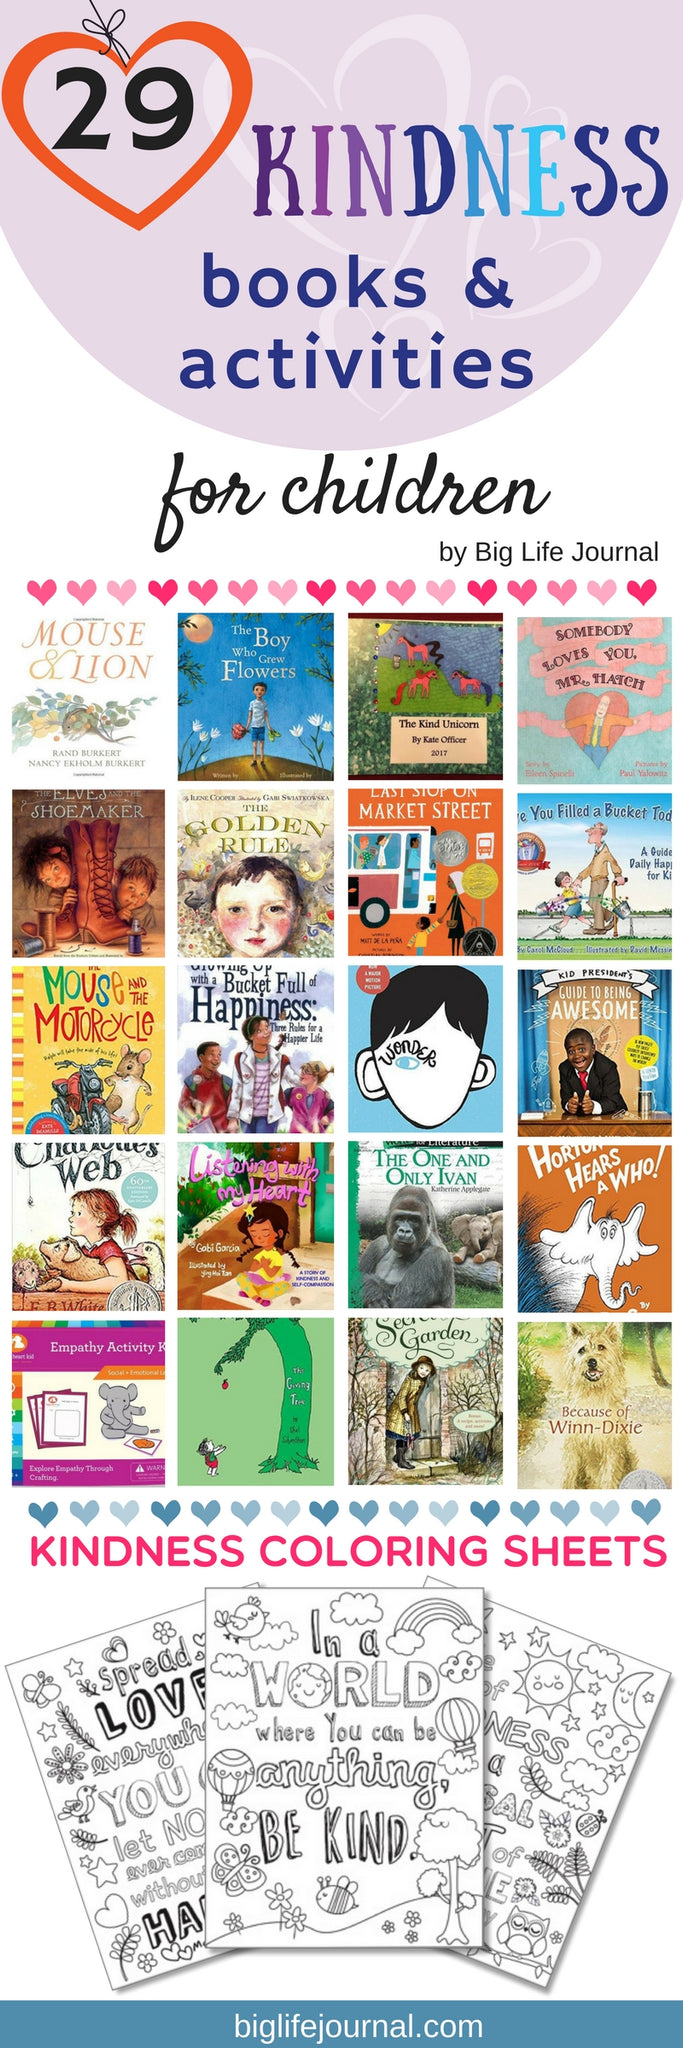 A must-have list of kindness books and activities which promote kindness and empathy in children.